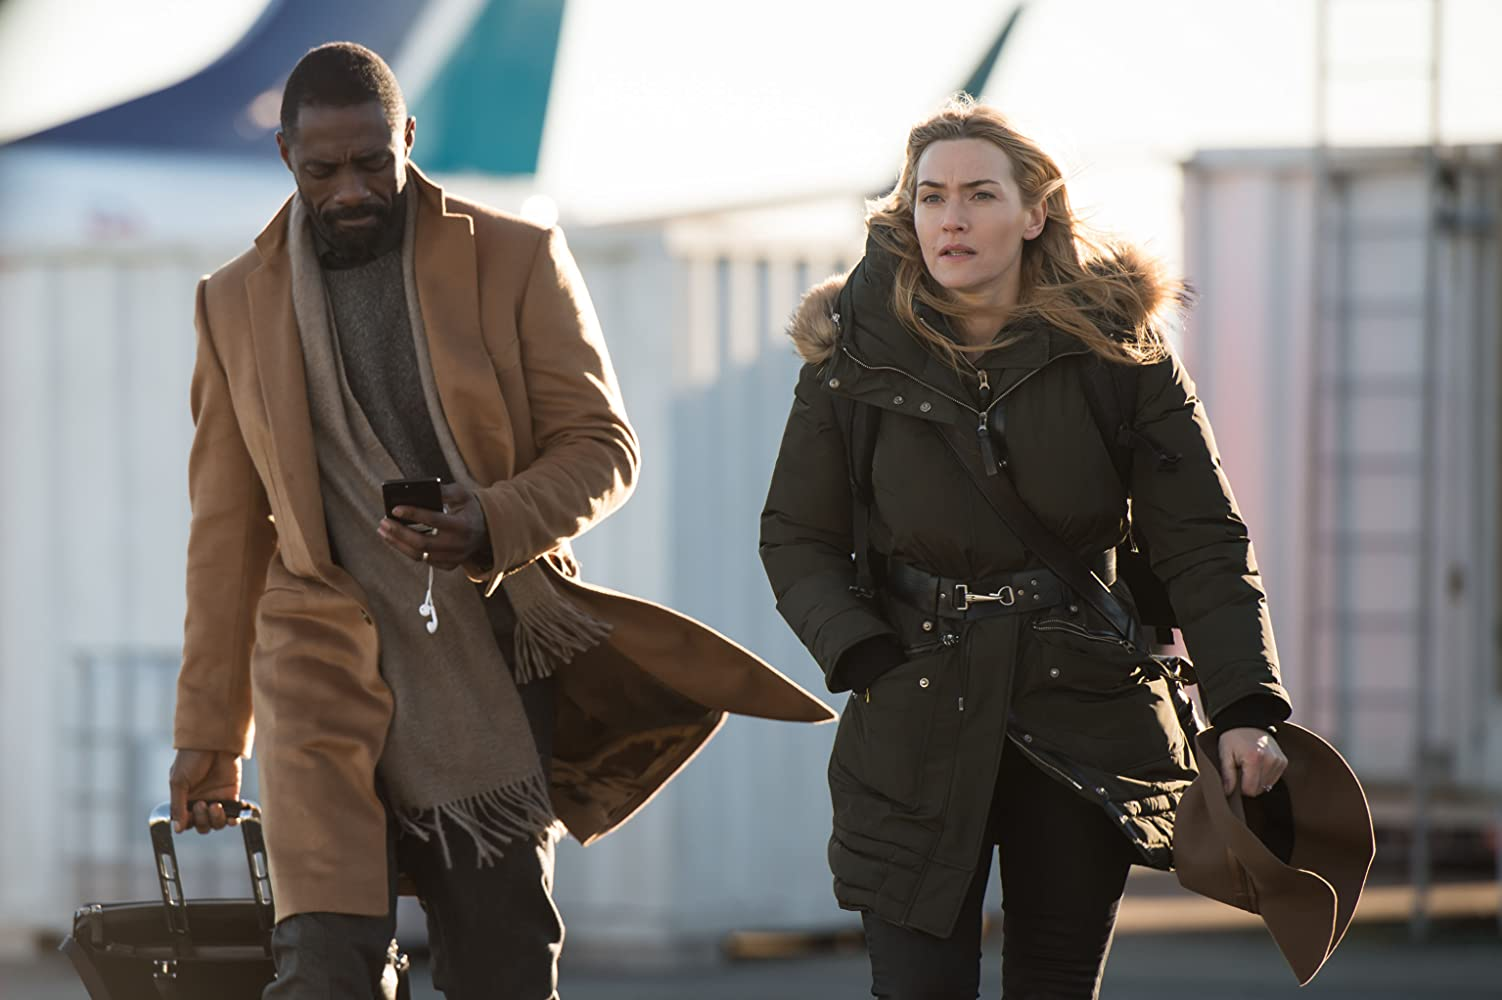 Kate Winslet and Idris Elba in The Mountain Between Us (2017)